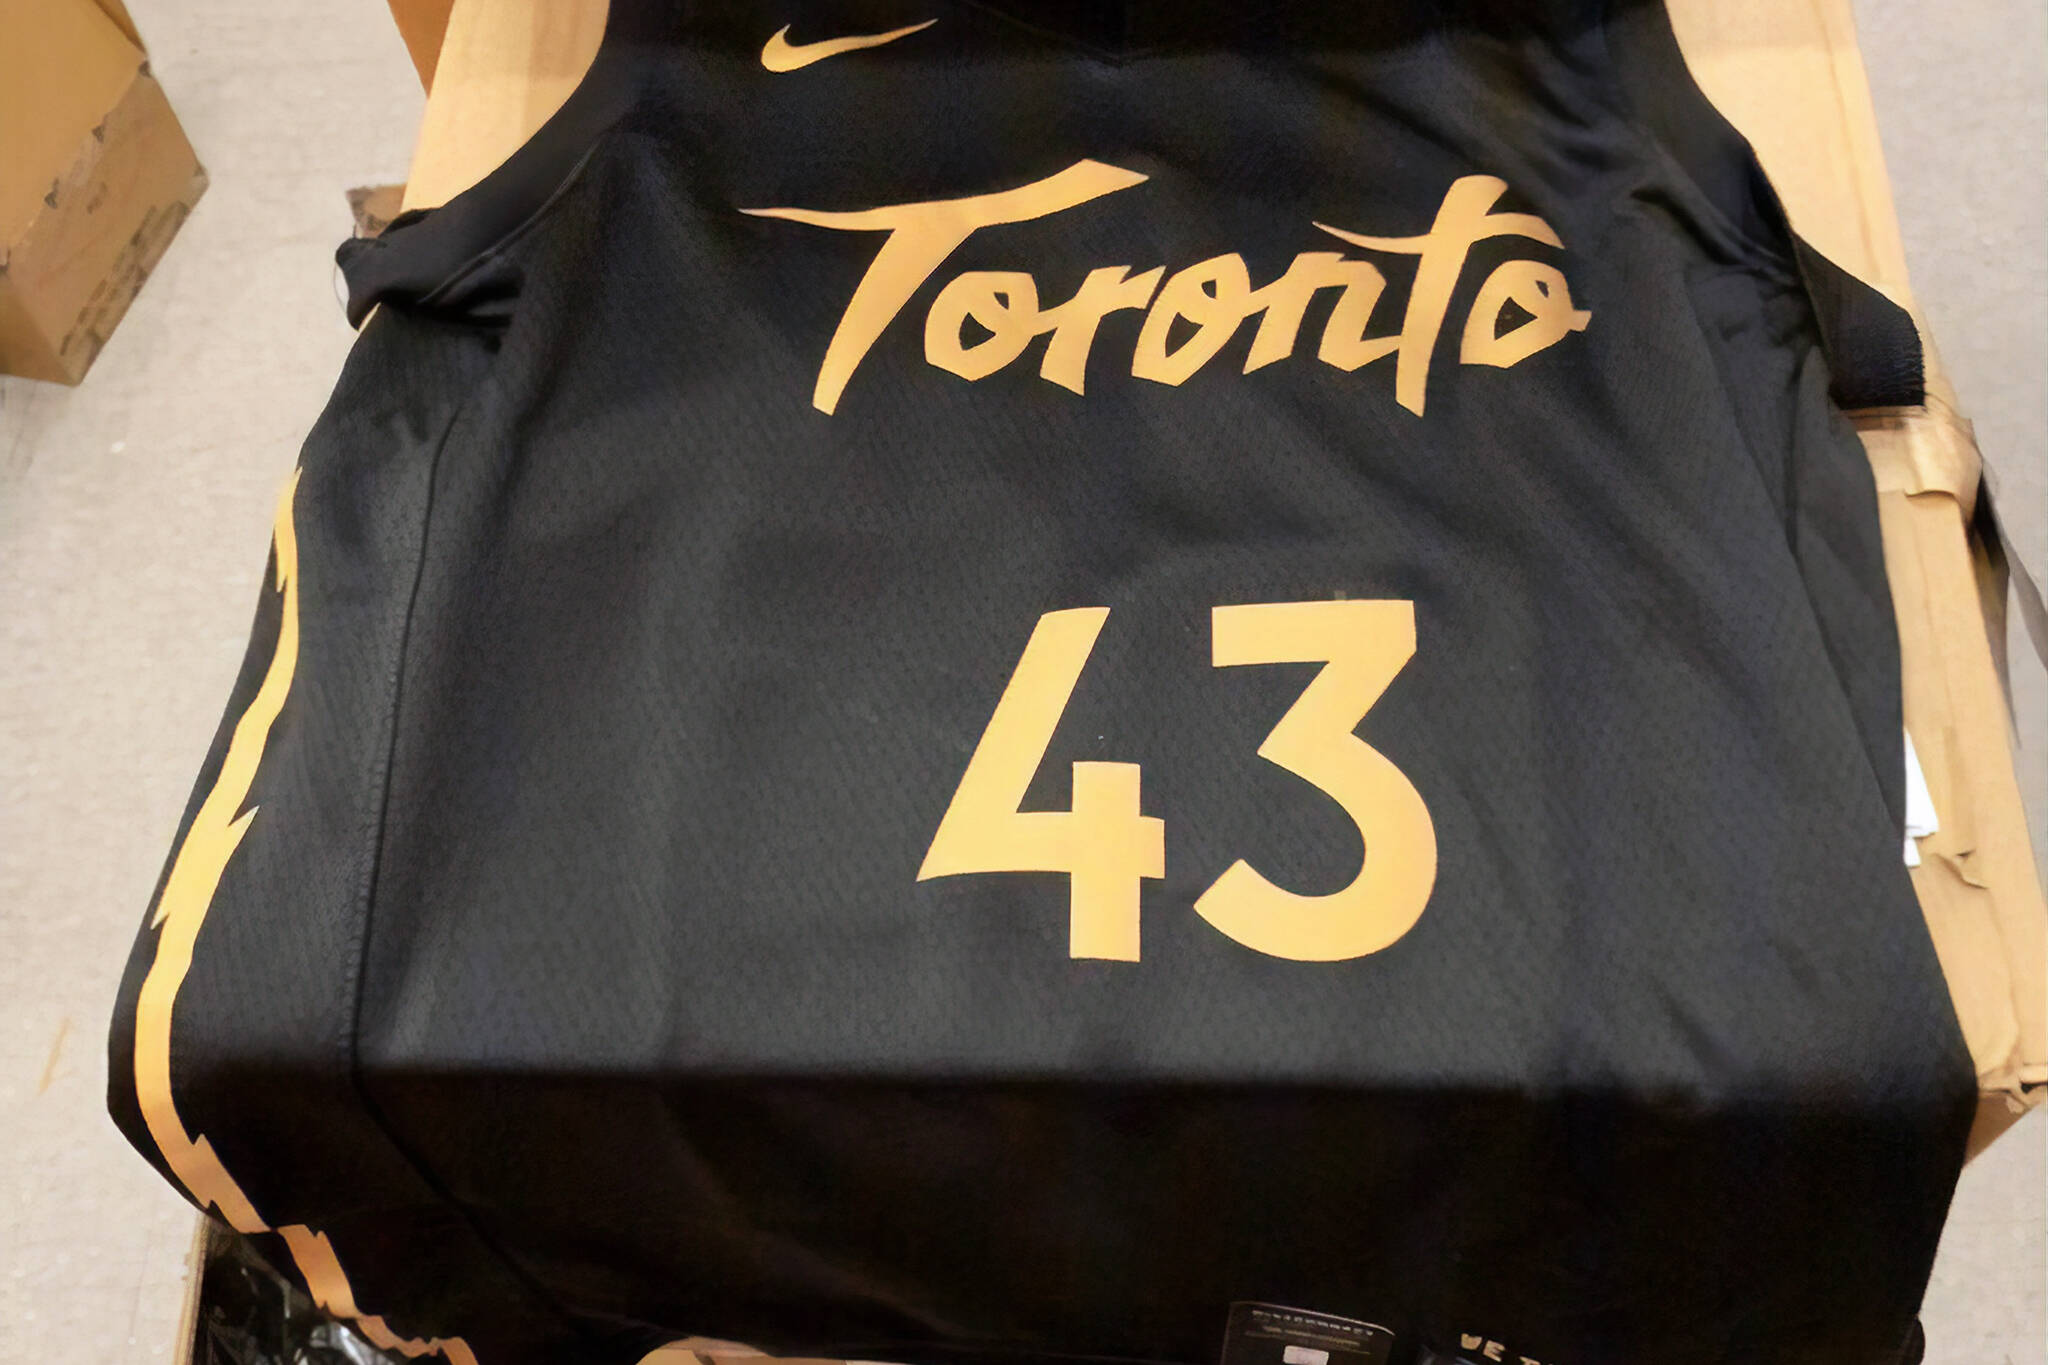 Toronto Raptors City Edition Jersey Might Have Just Been